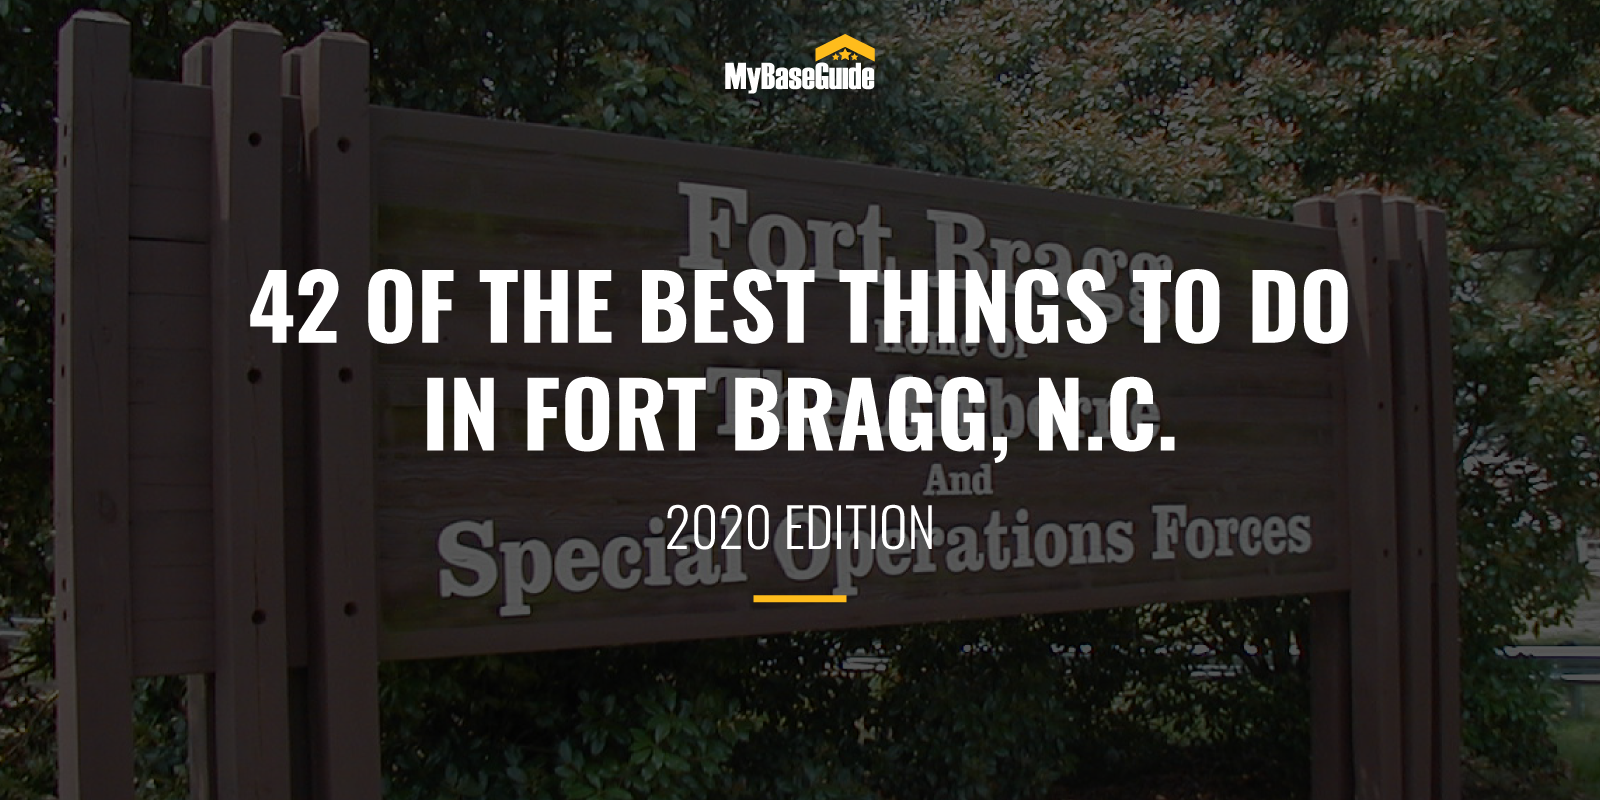 42 Of the Best Things to Do in Fort Bragg NC